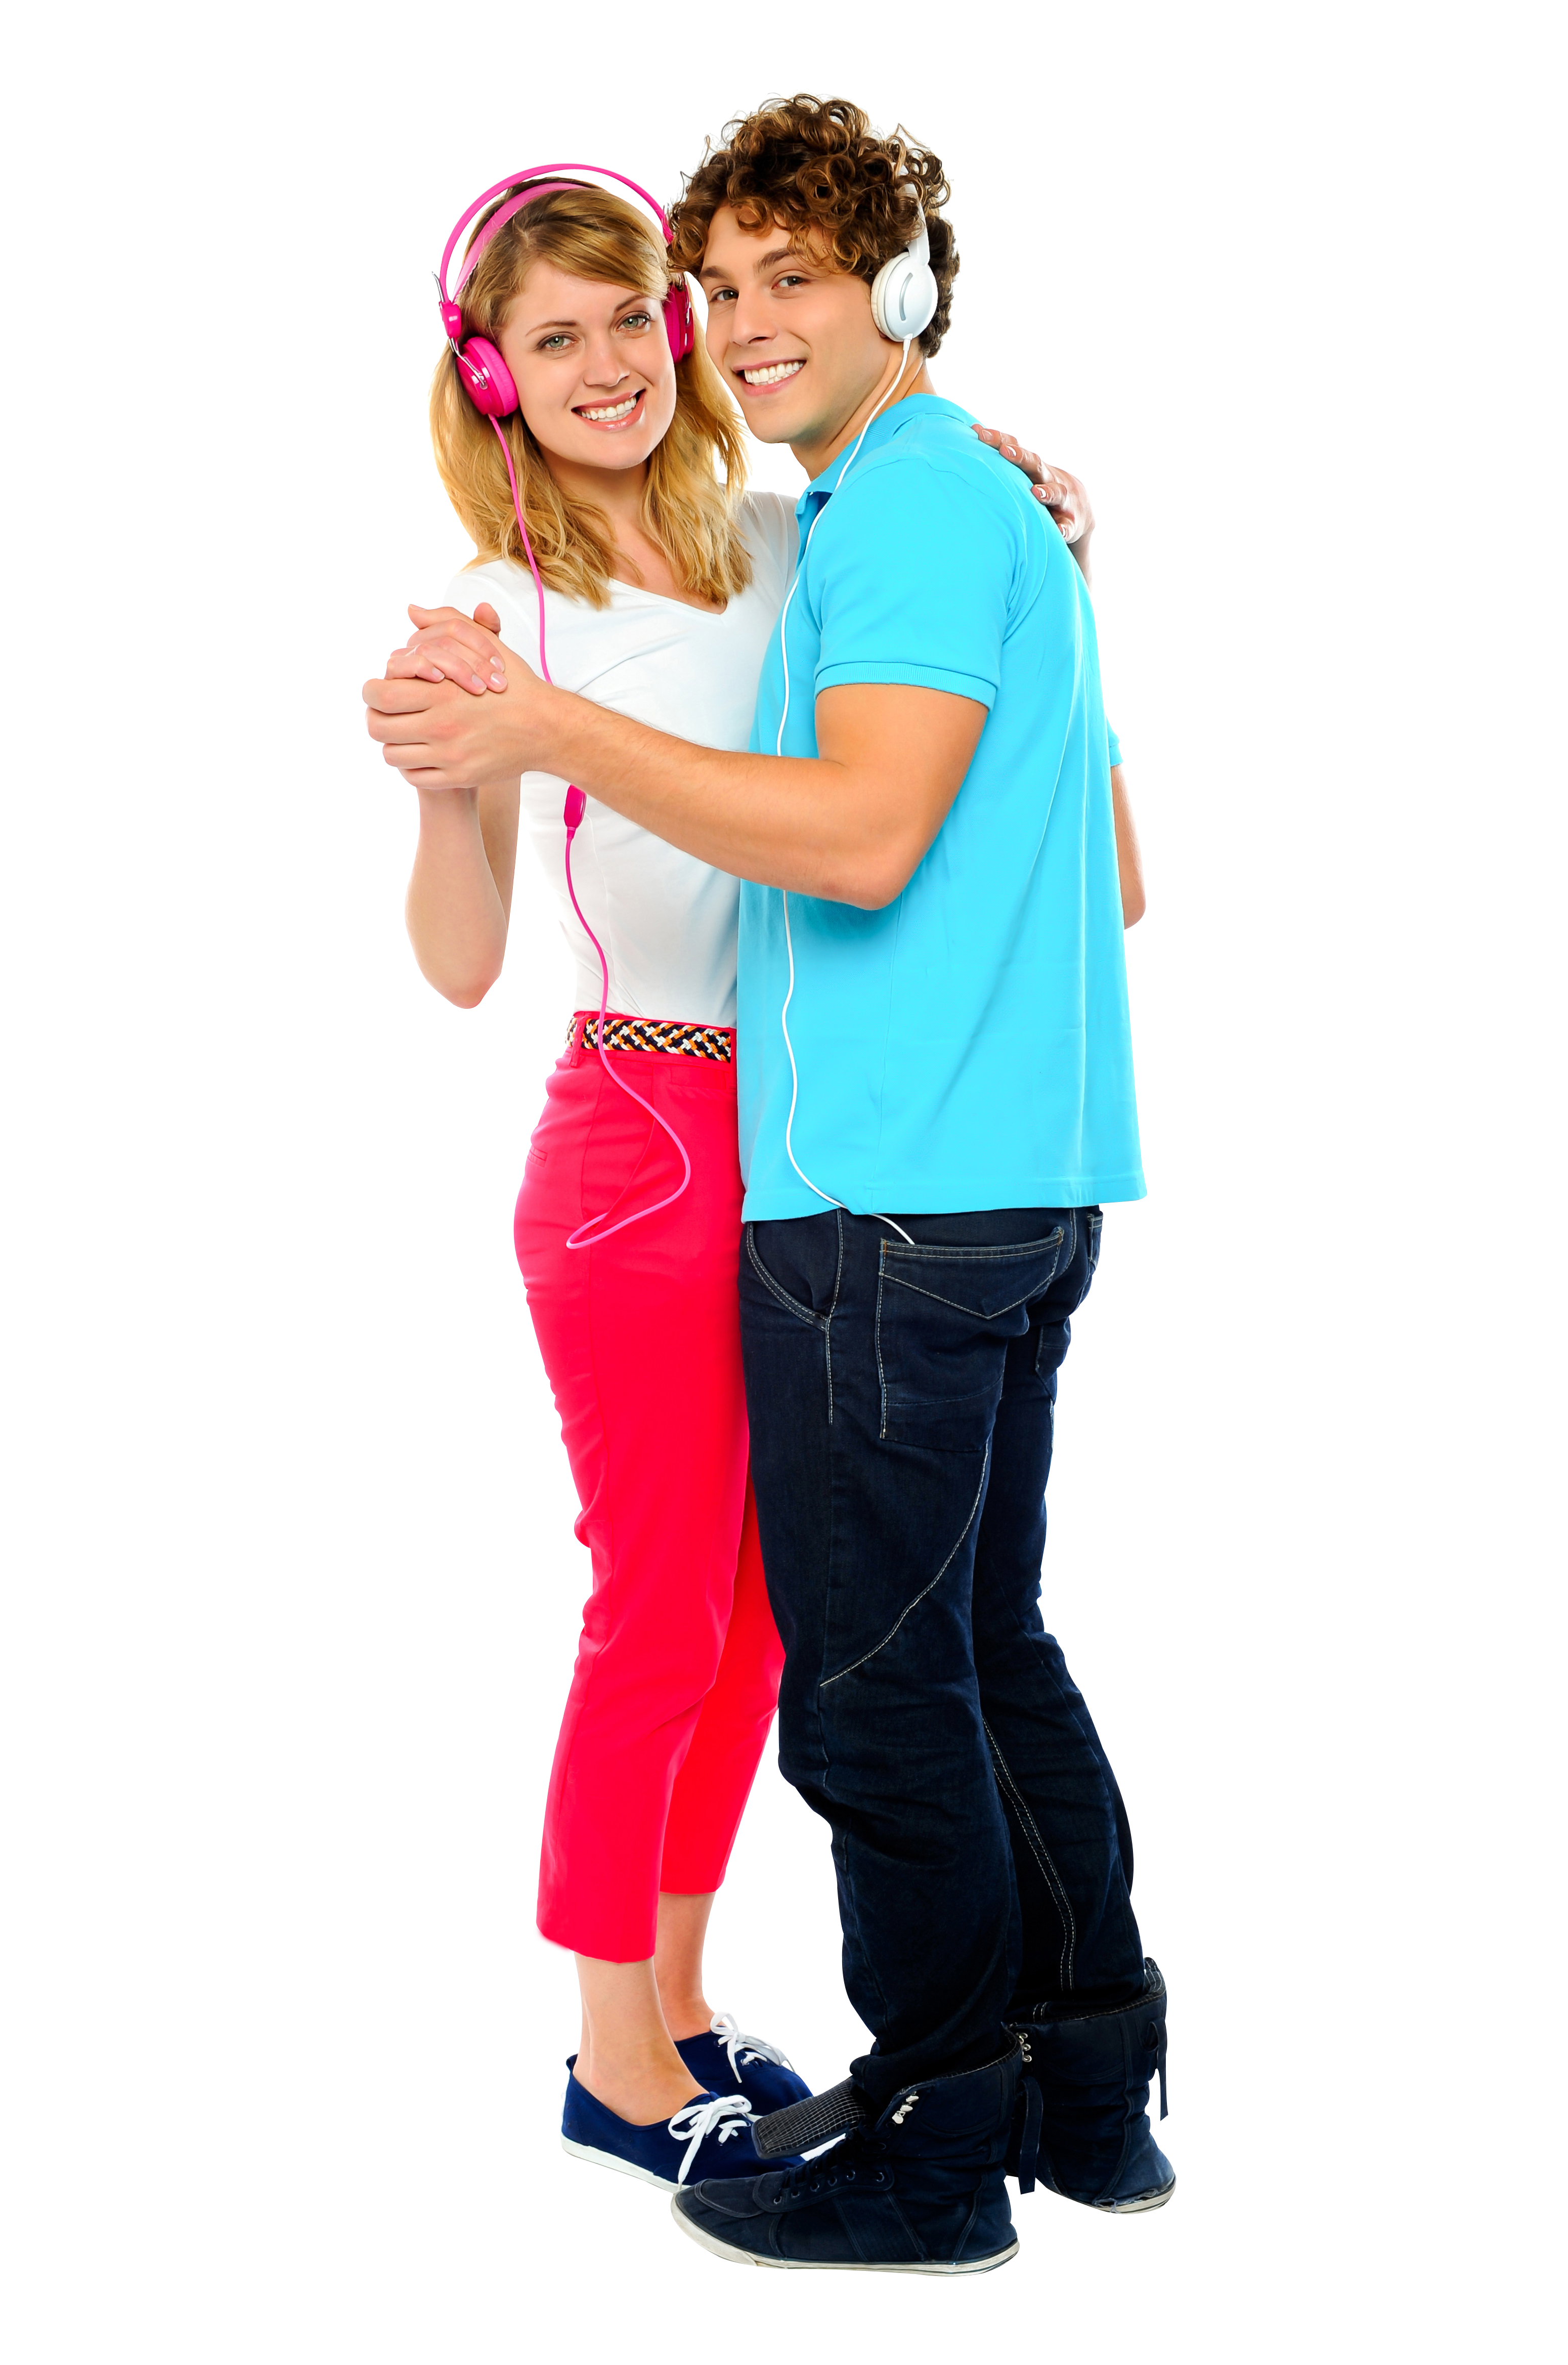 Love couple png. Image play